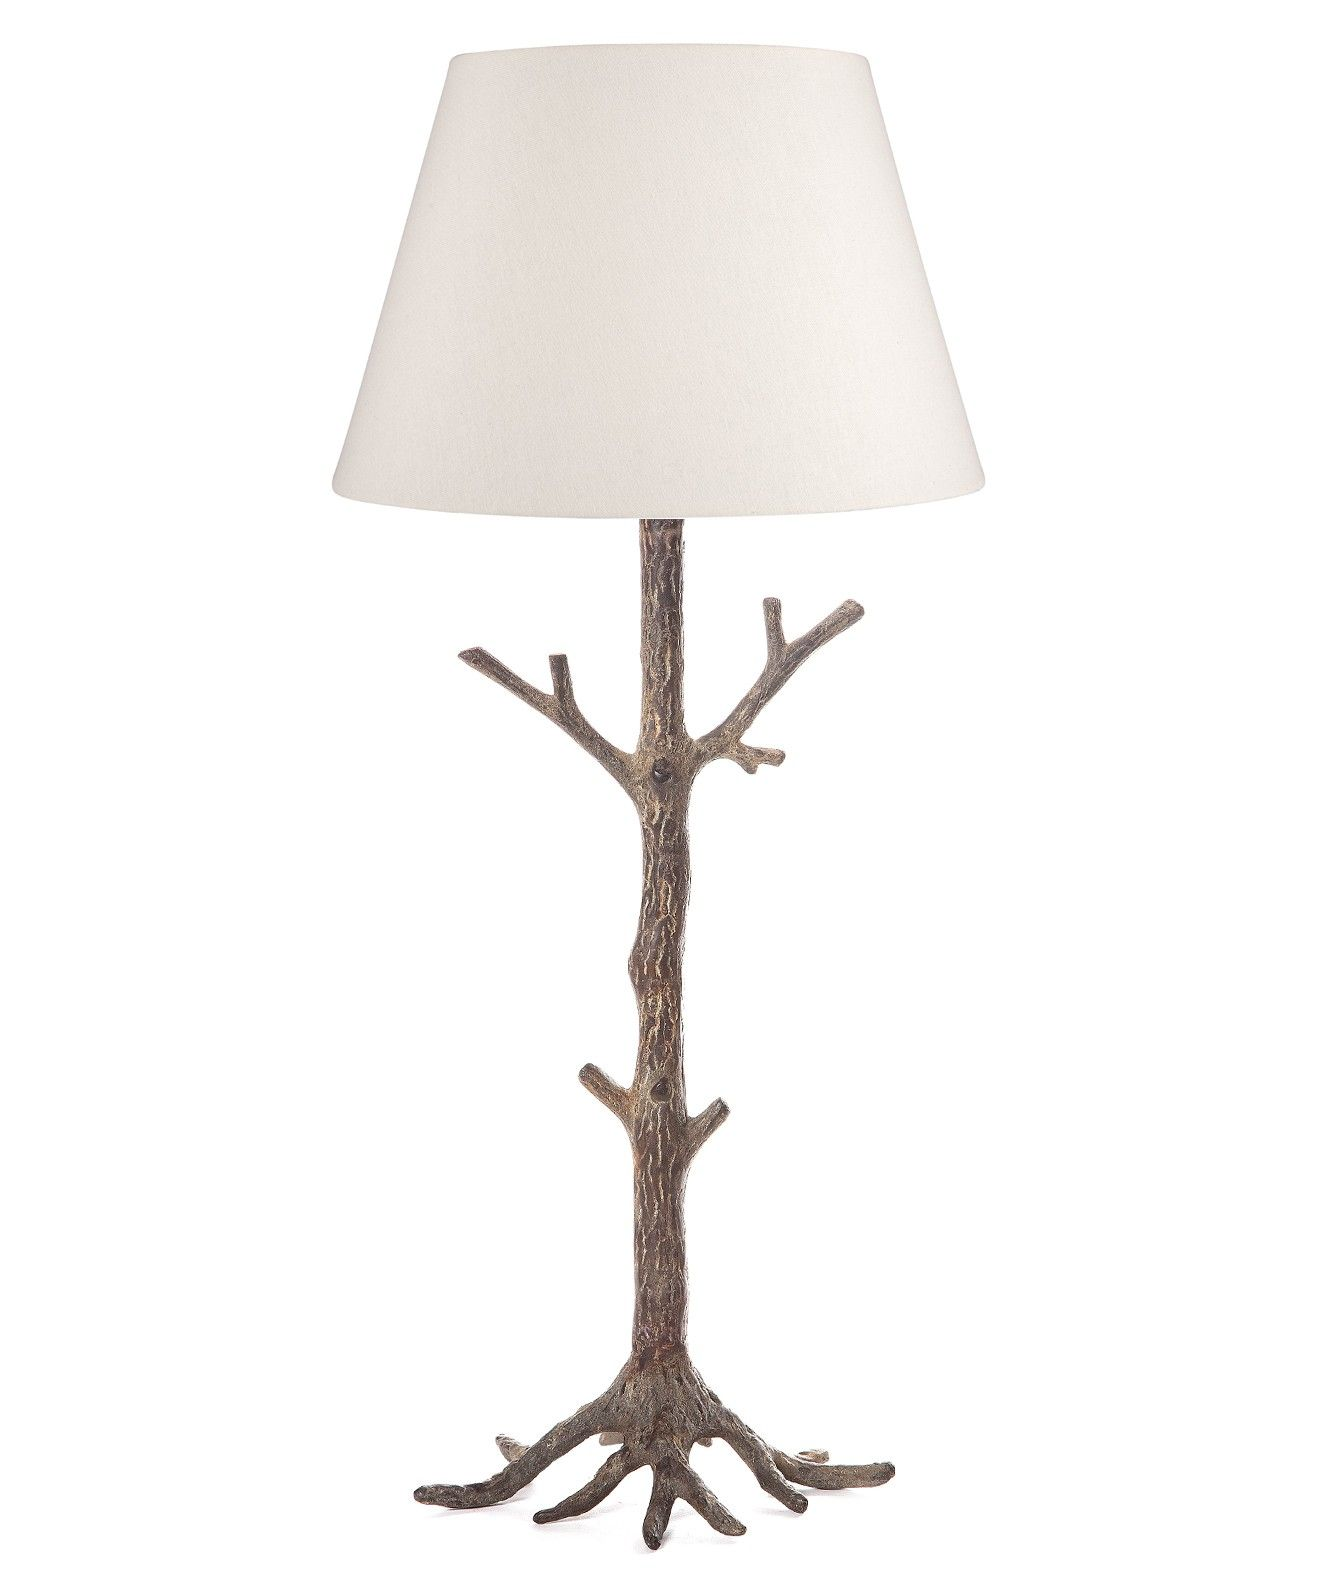 Arbre tree table lamp base table lamps lighting of hearth and arbre tree table lamp base table lamps lighting mozeypictures Choice Image